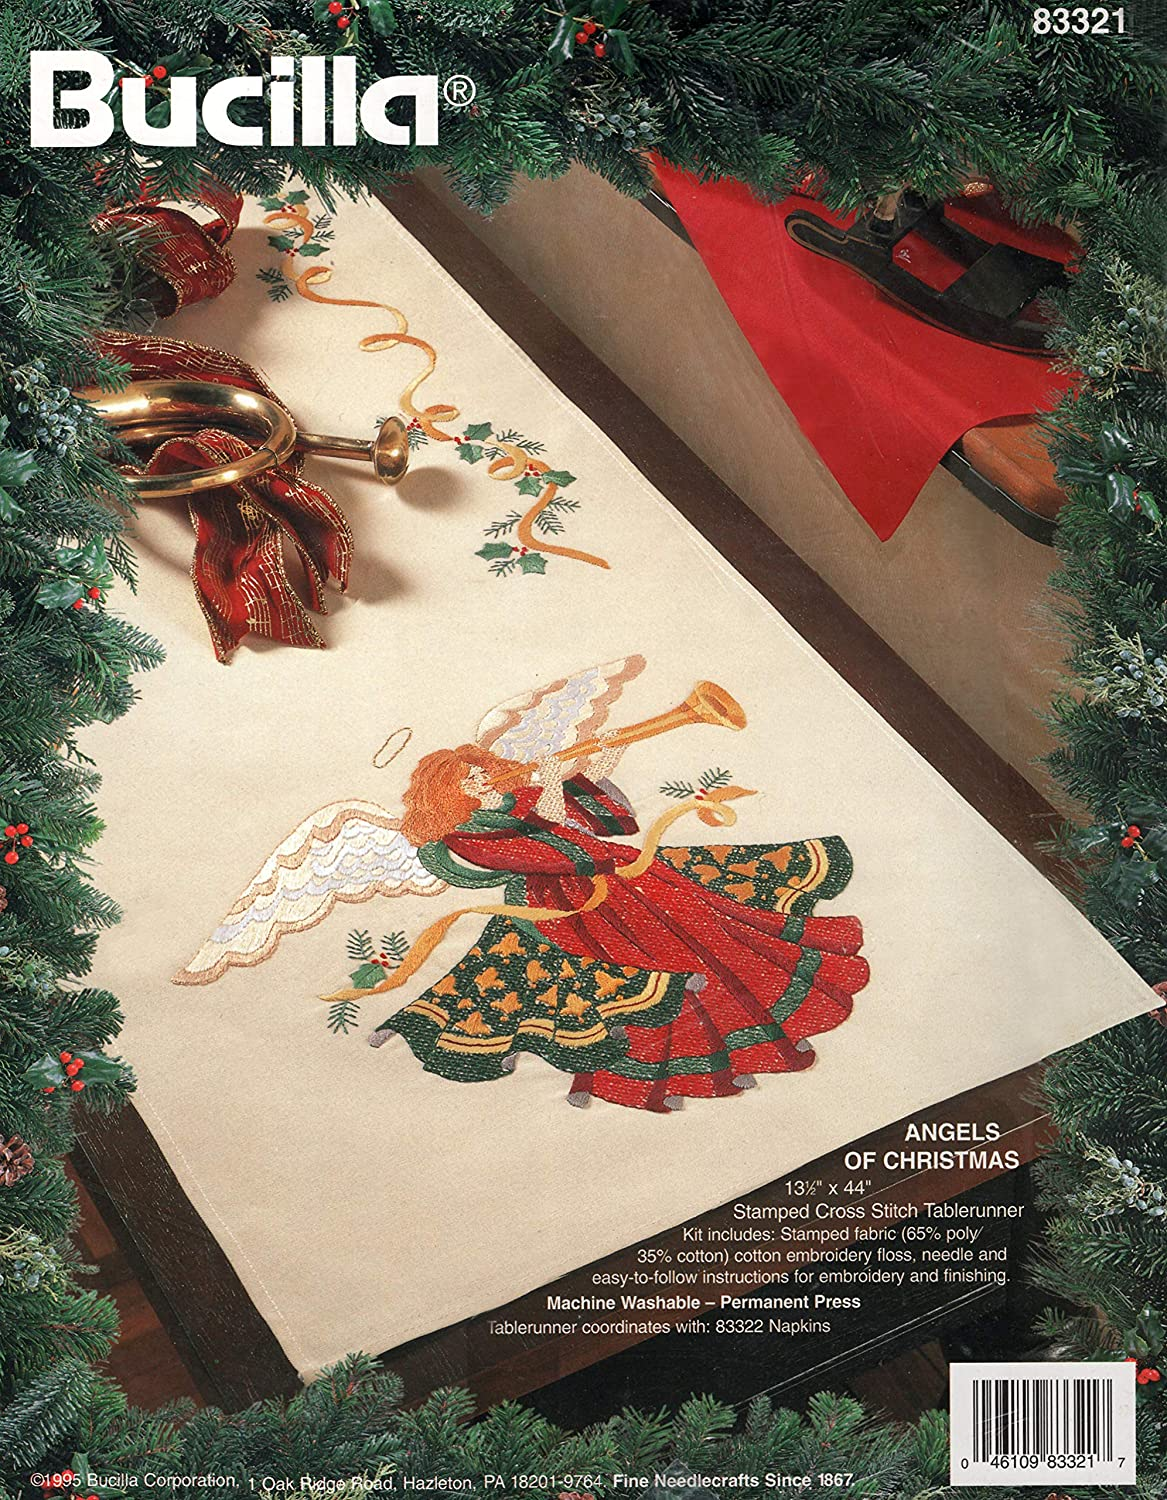 Bucilla Angels of Christmas Stamped Cross Stitch Tablerunner Kit by Bucilla B00CVZY2V0